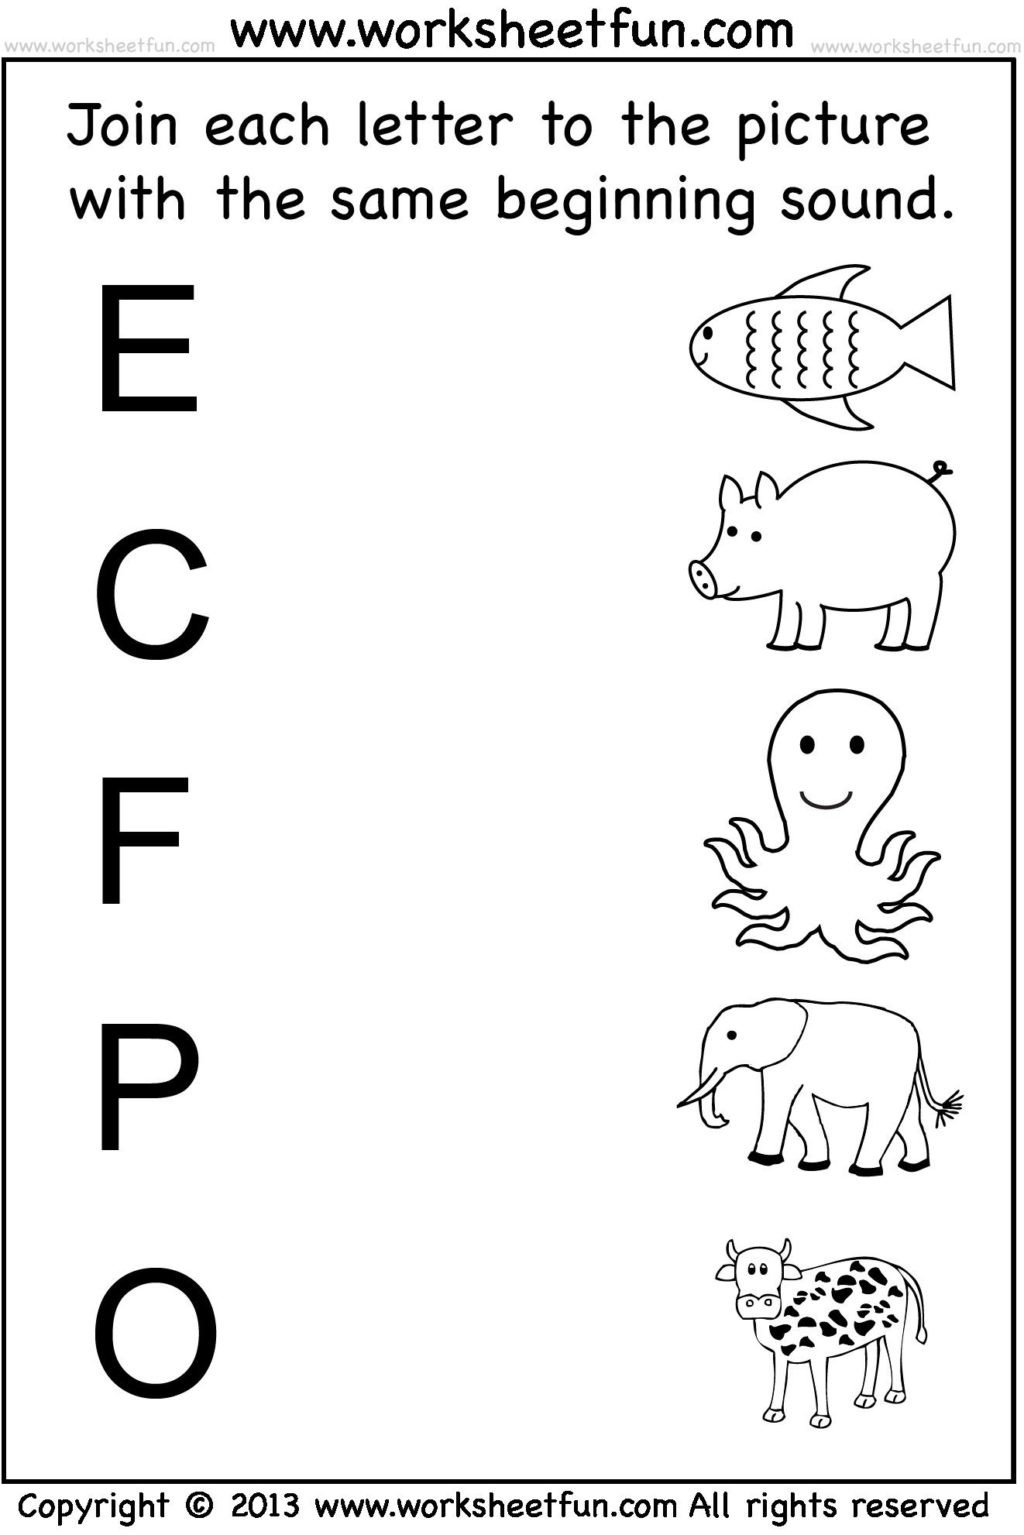 Letter L Worksheet Preschool Worksheet Free Printable for Preschoolers Outstanding